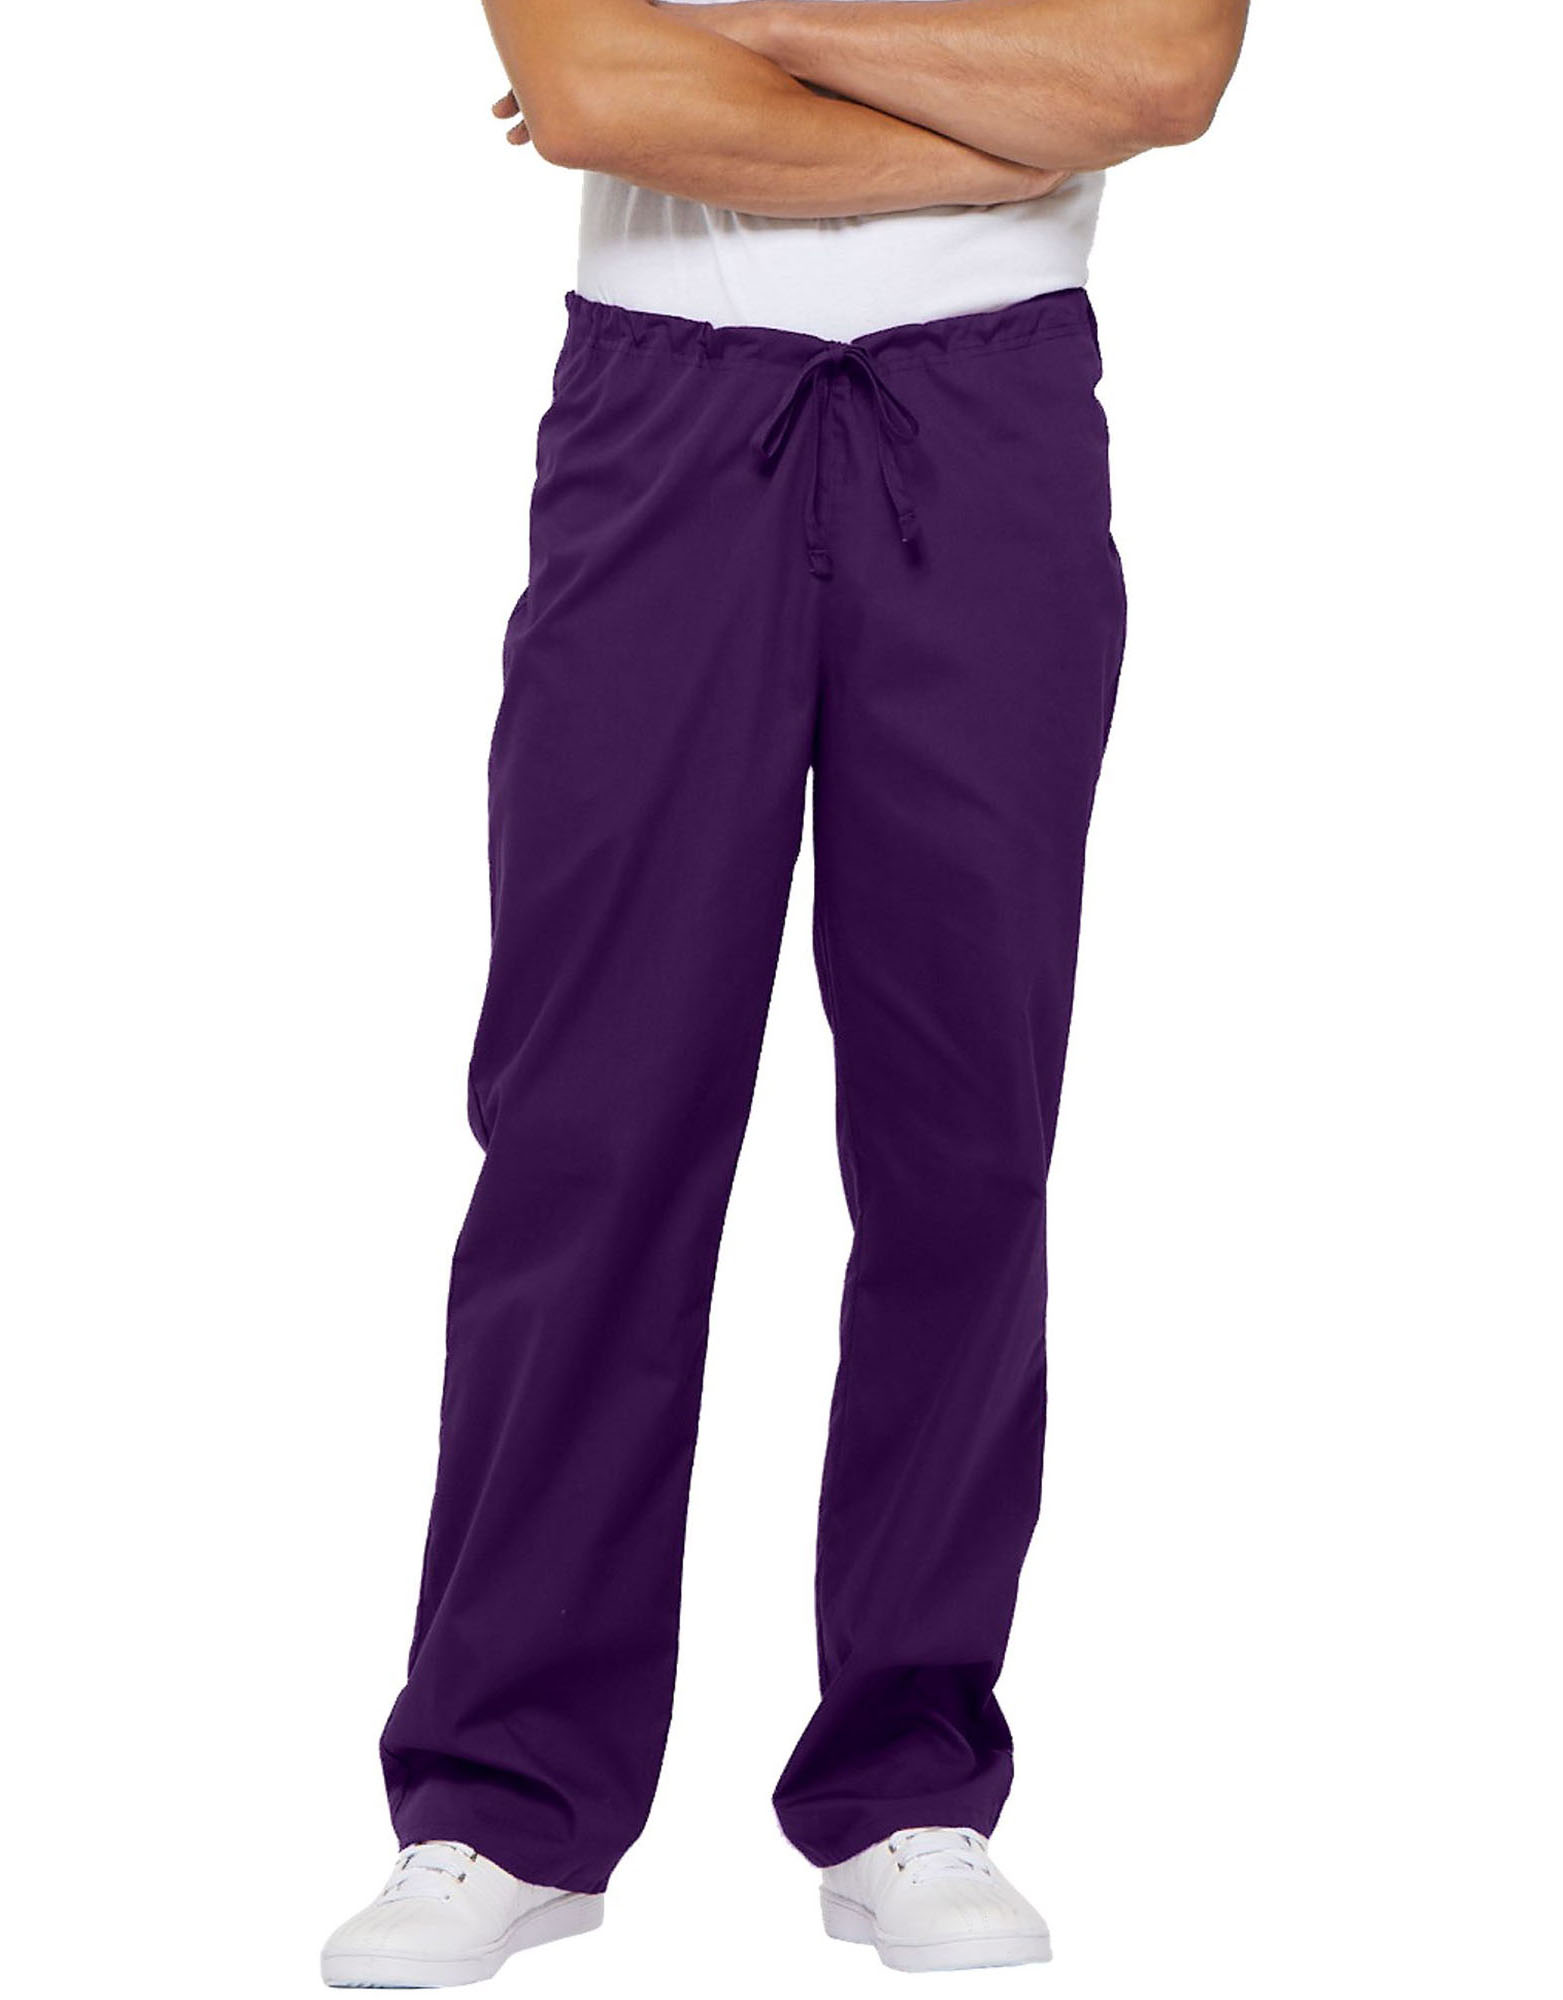 Unisex EDS Signature Scrub Pants - Purple Eggplant (EGG)